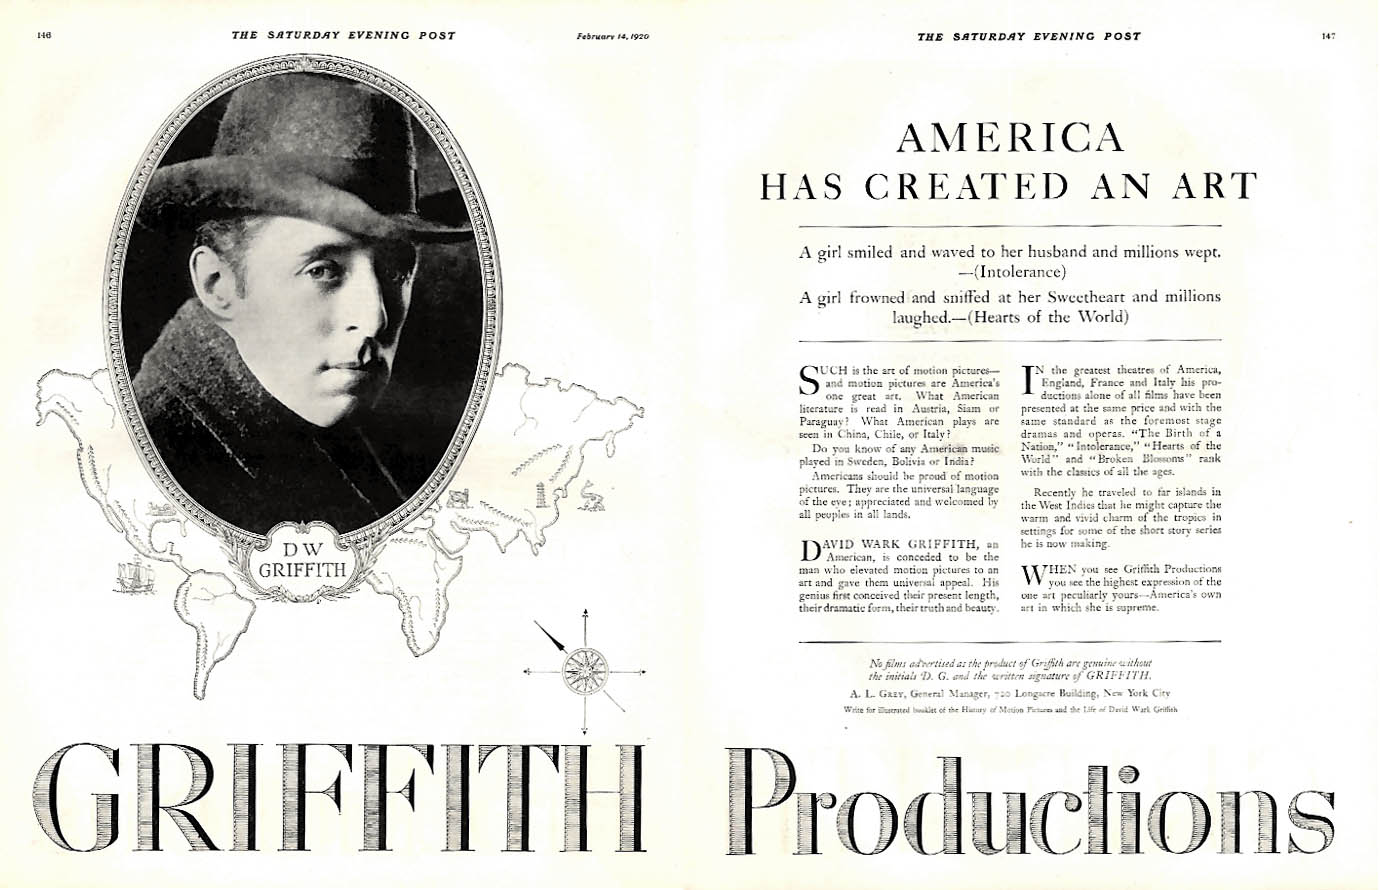 Amerioca Has Created an Art - D W Griffith Productions films ad 1920 SEP